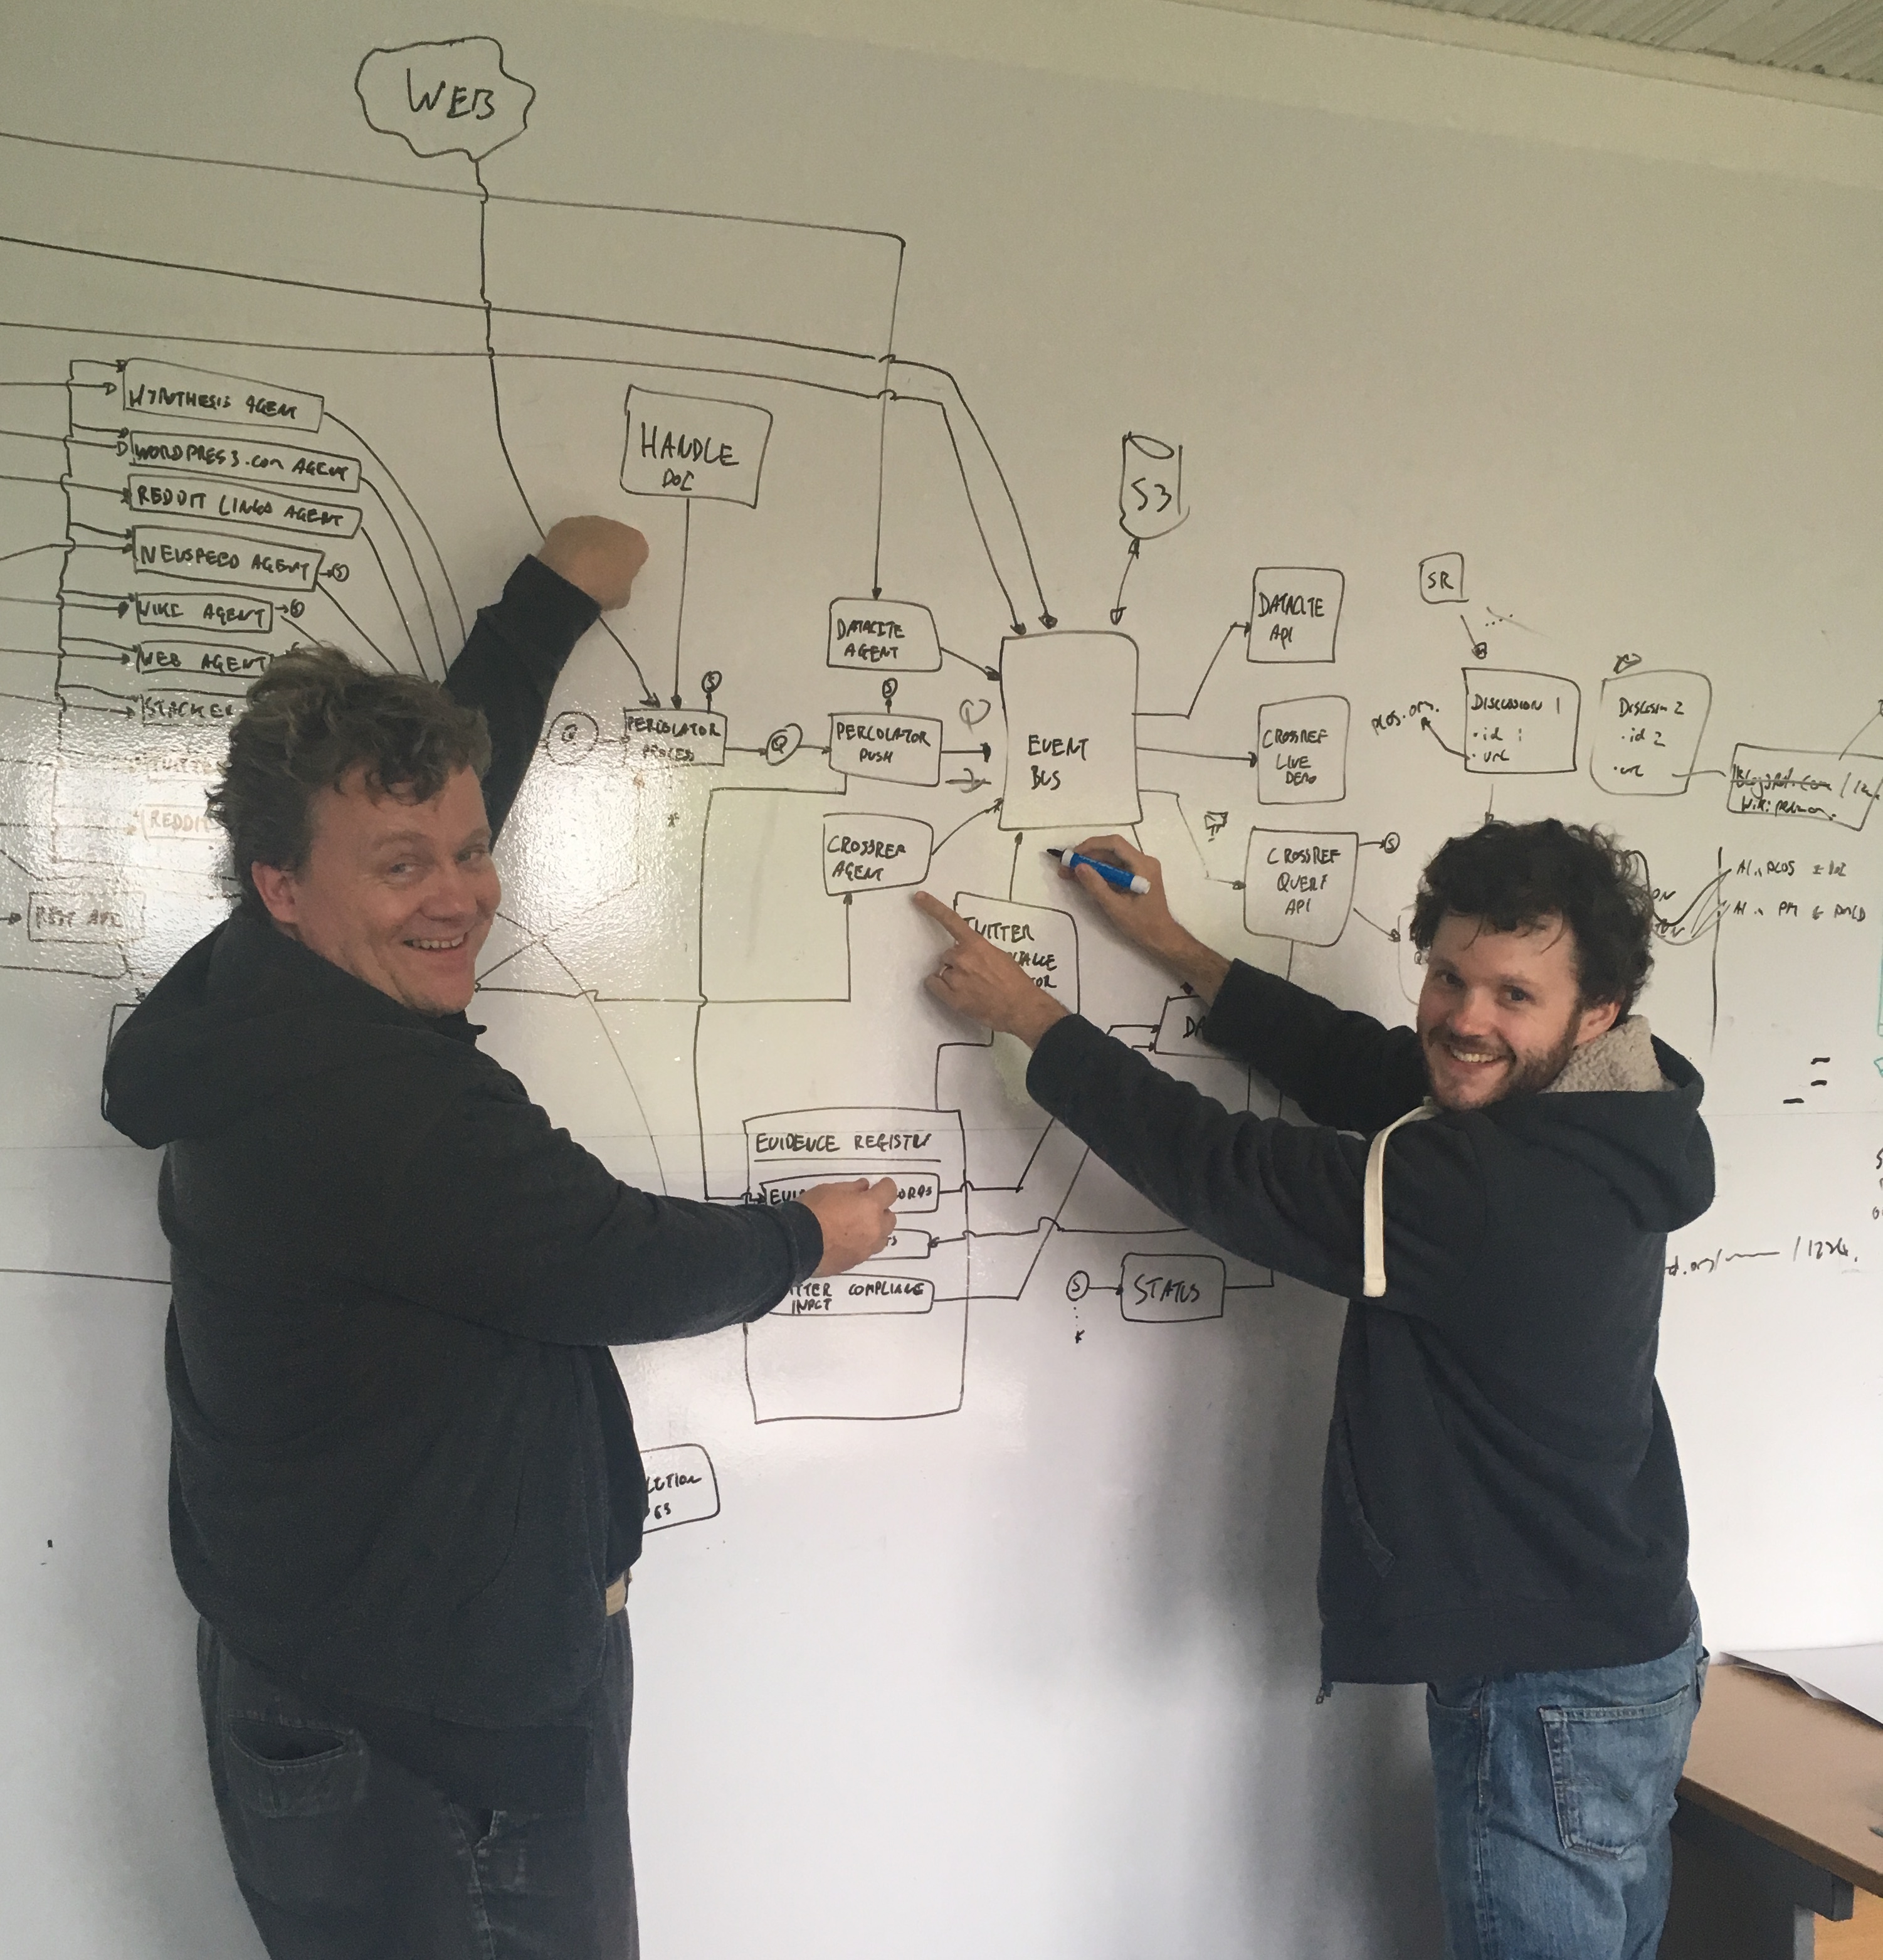 image Martin Fenner and Joe Wass drawing plans on a whiteboard